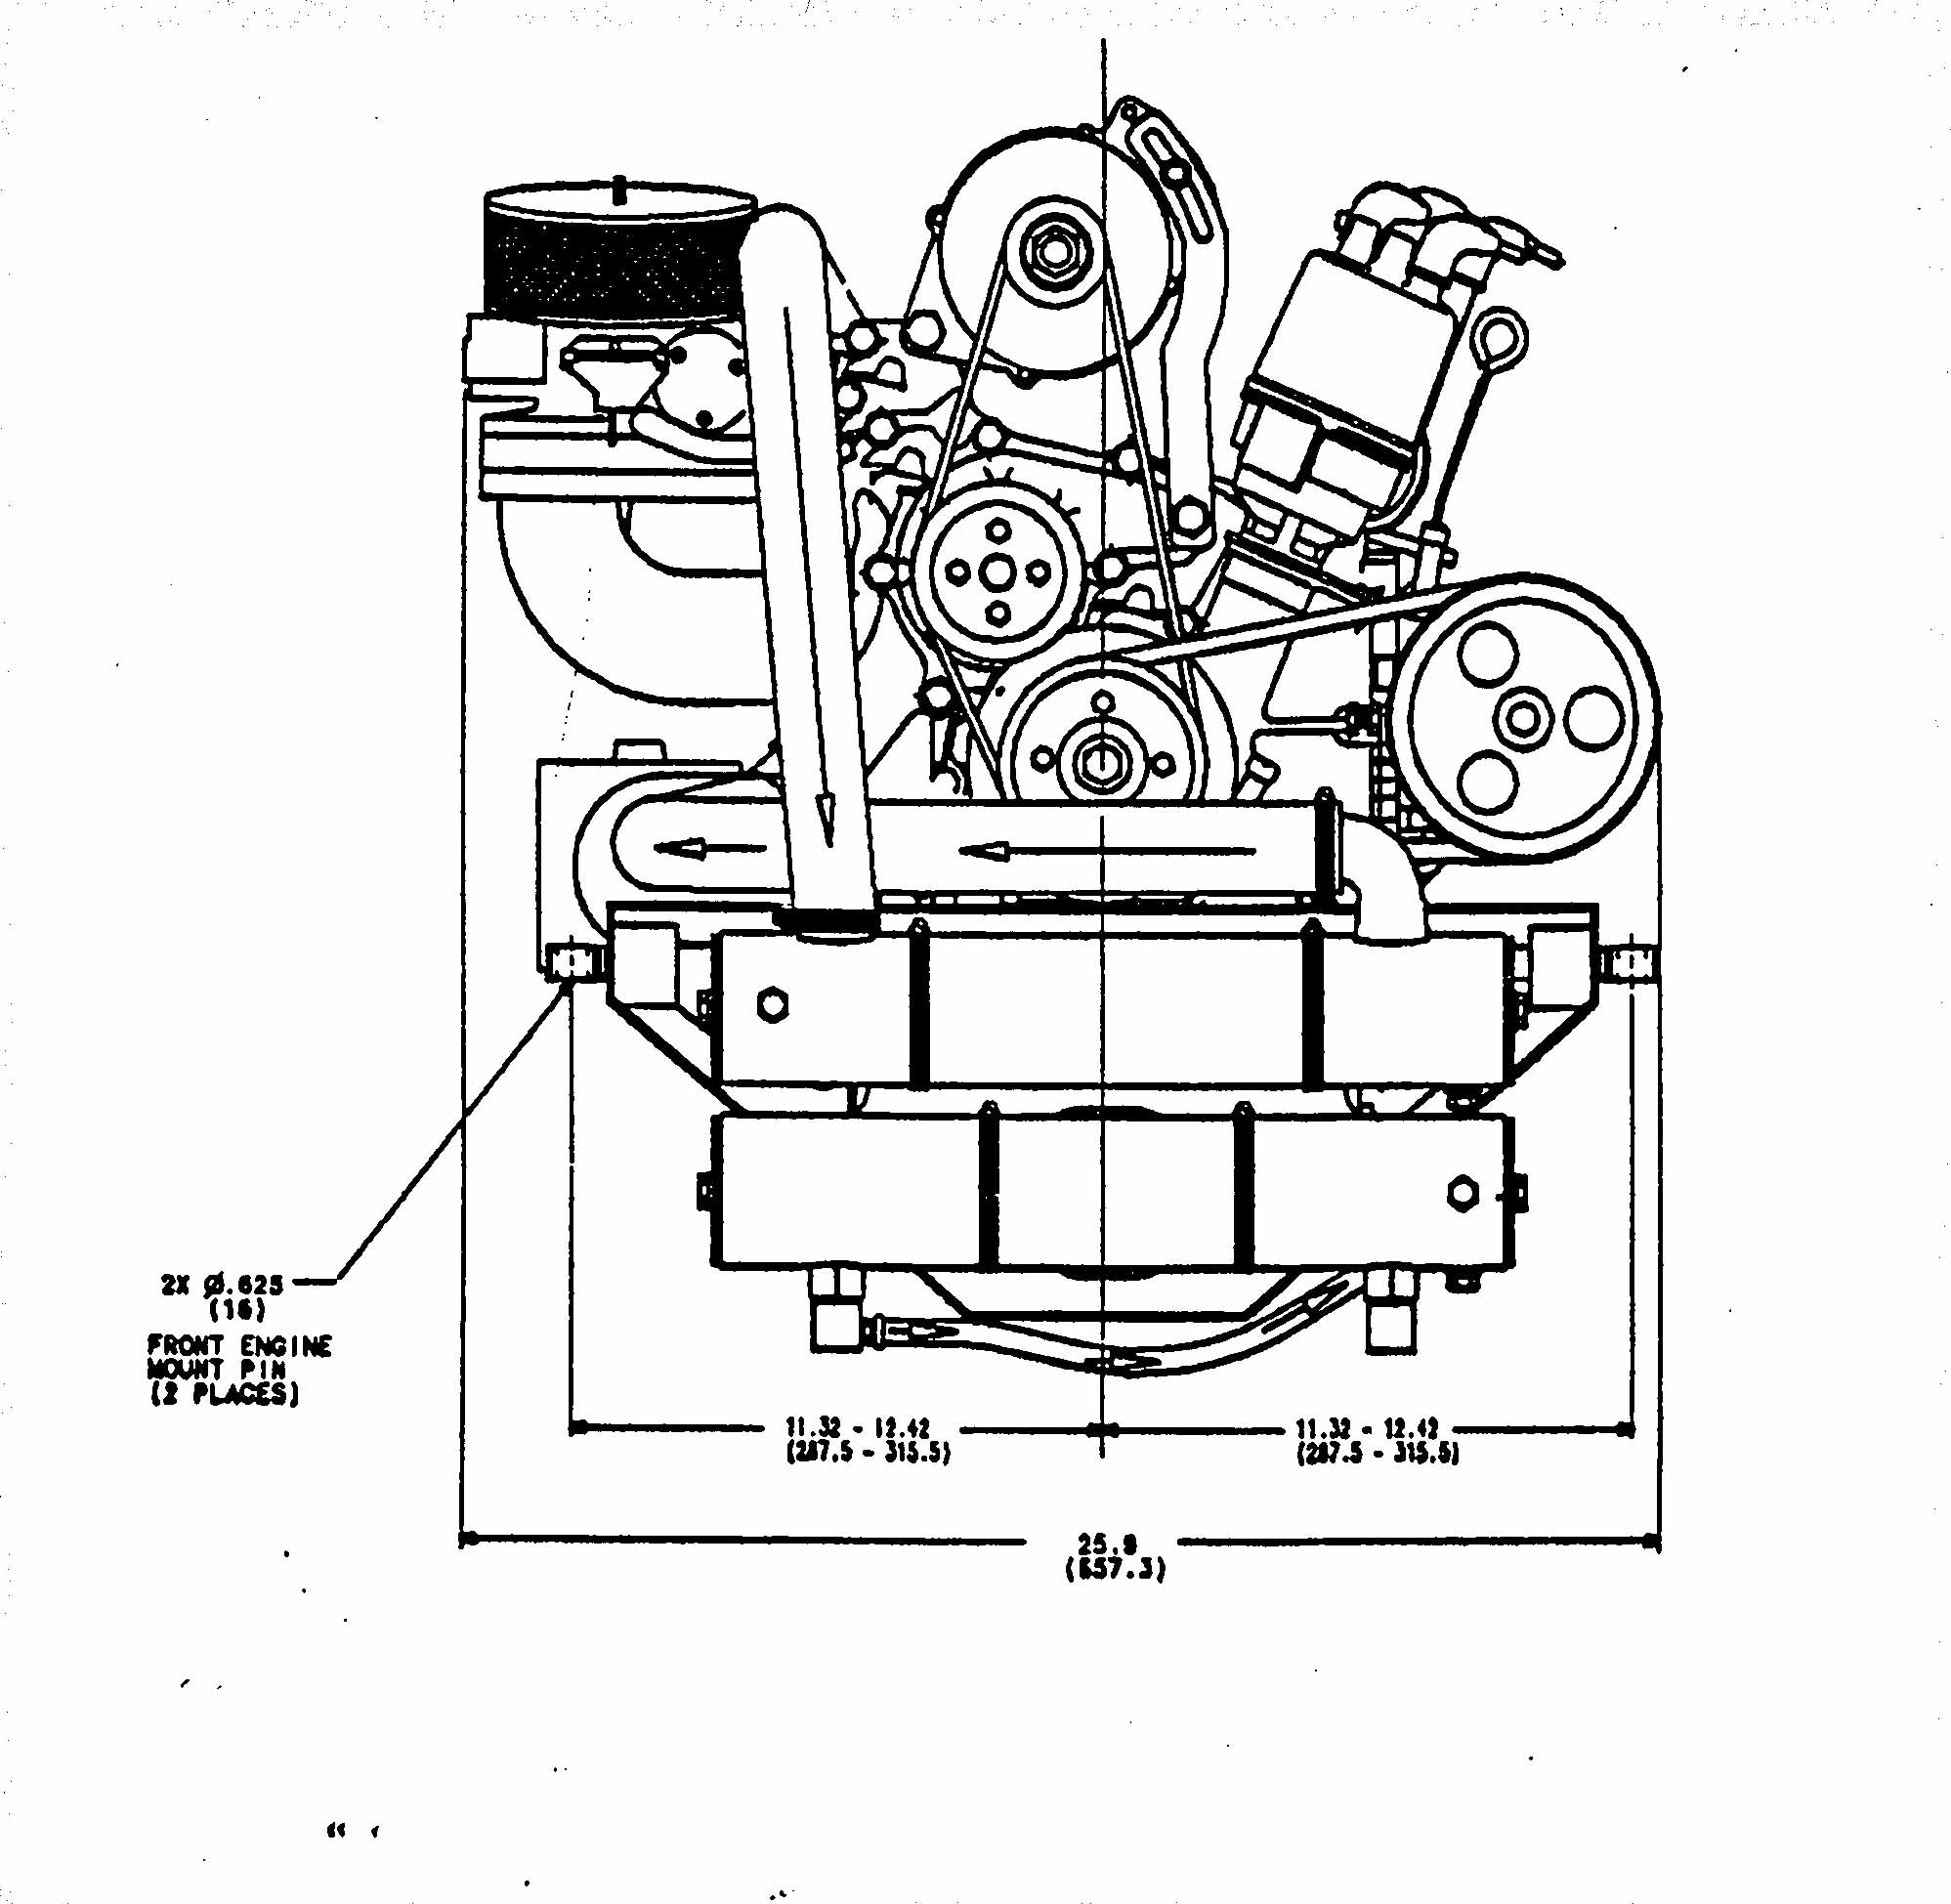 Wrg Mazda Rx 7 Engine Diagram